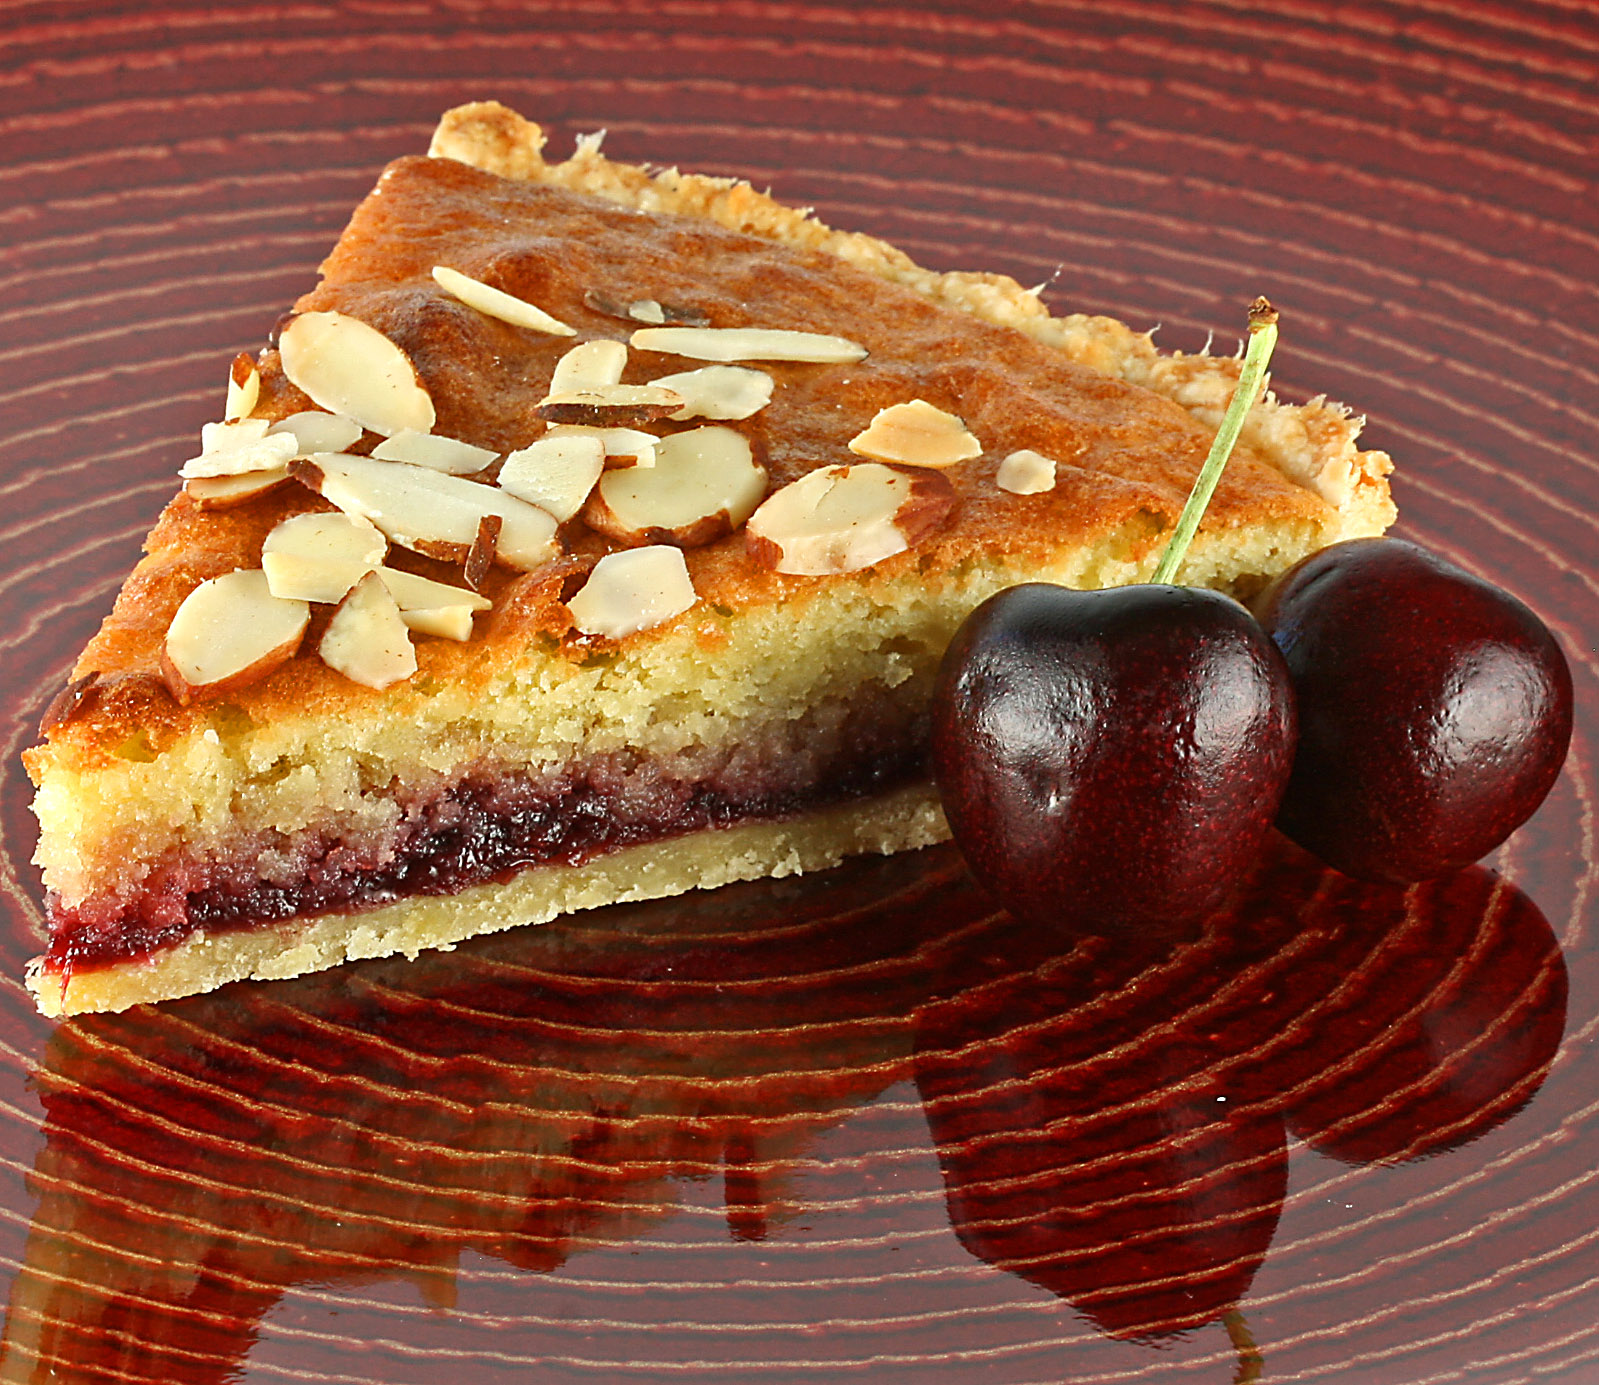 tarts pastries jam almond HD Wallpaper